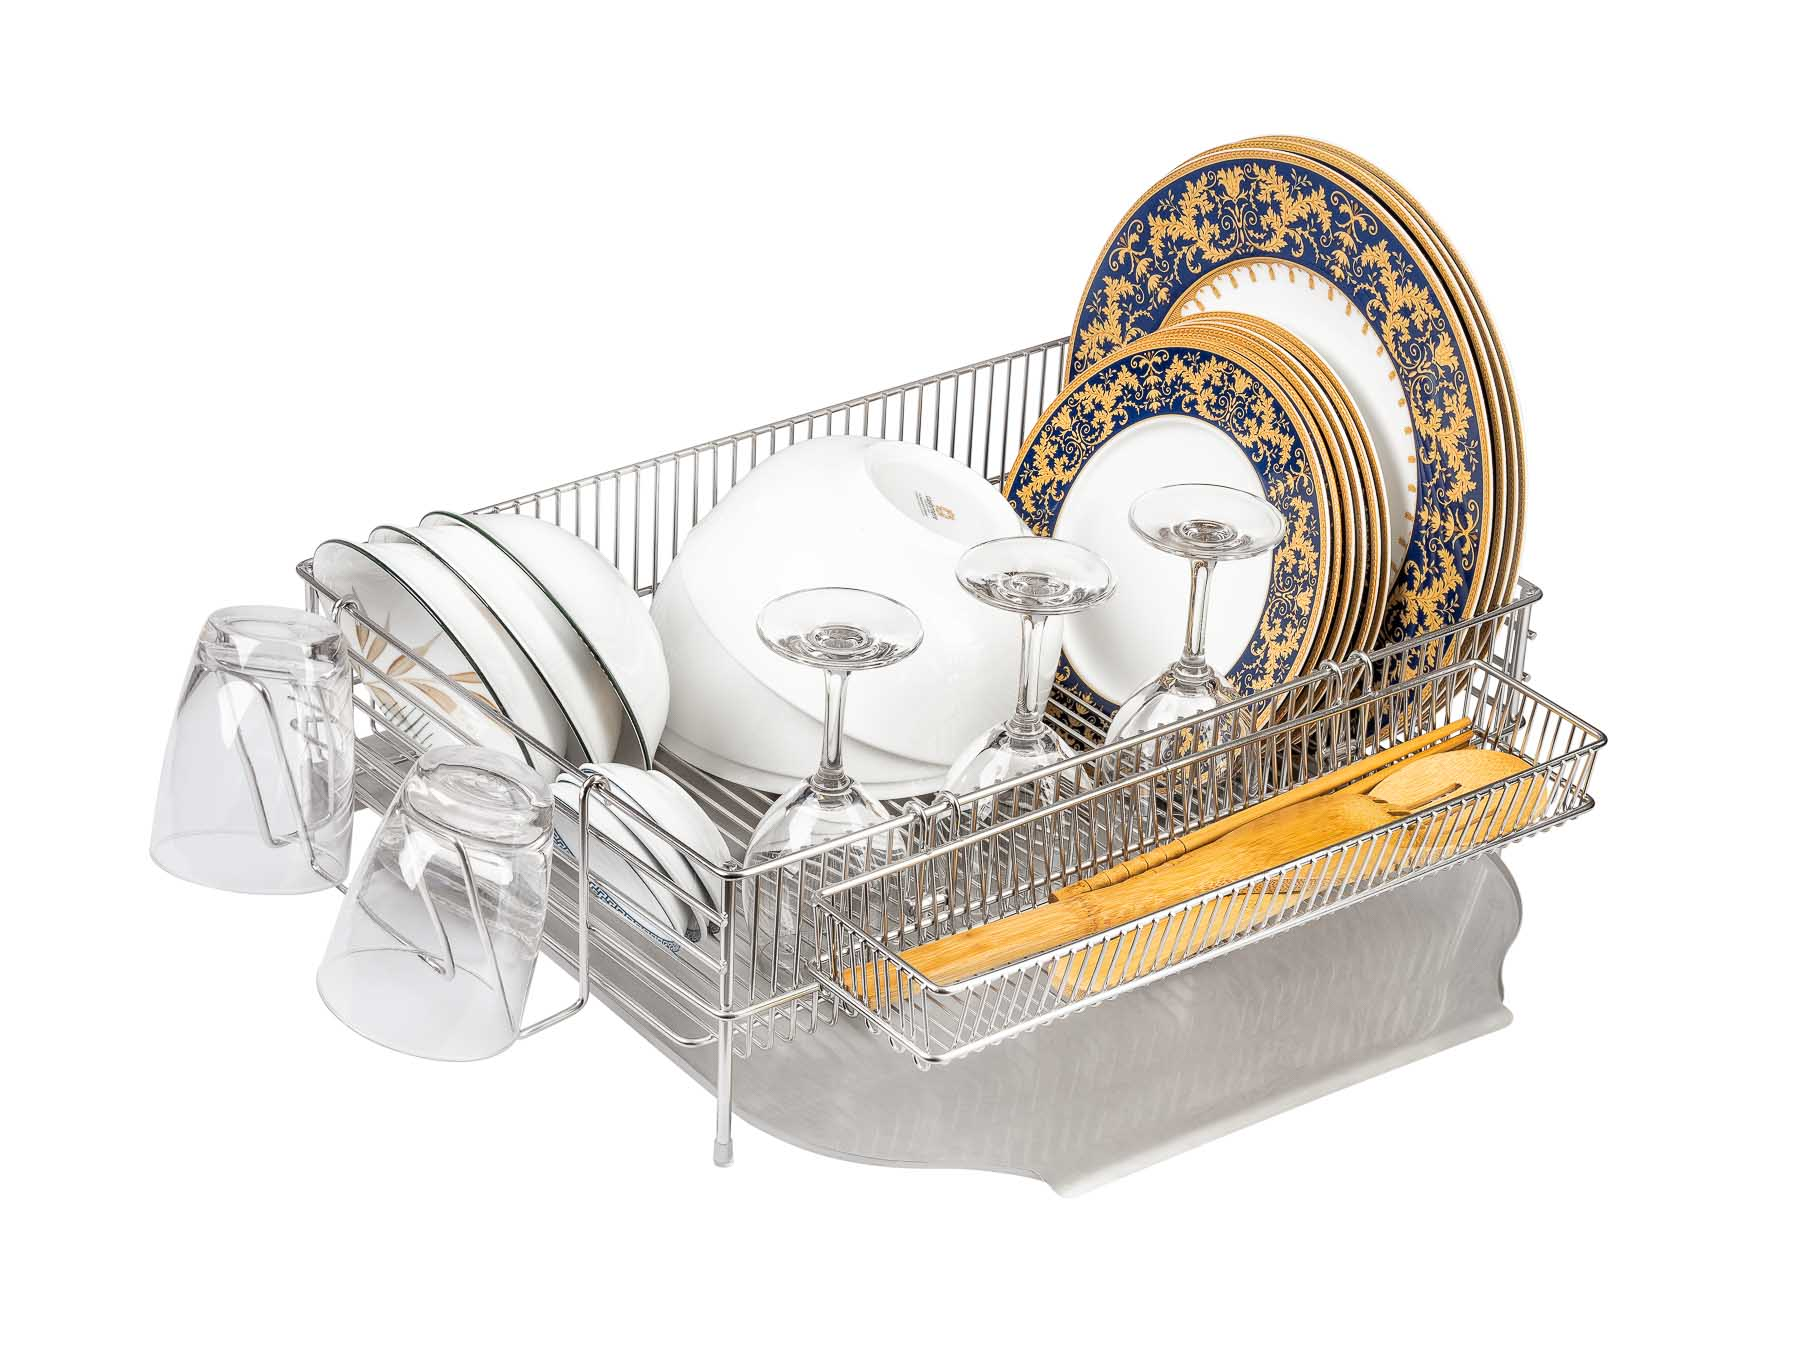 Dish Rack with Plates and cups - Product photography for Amazon